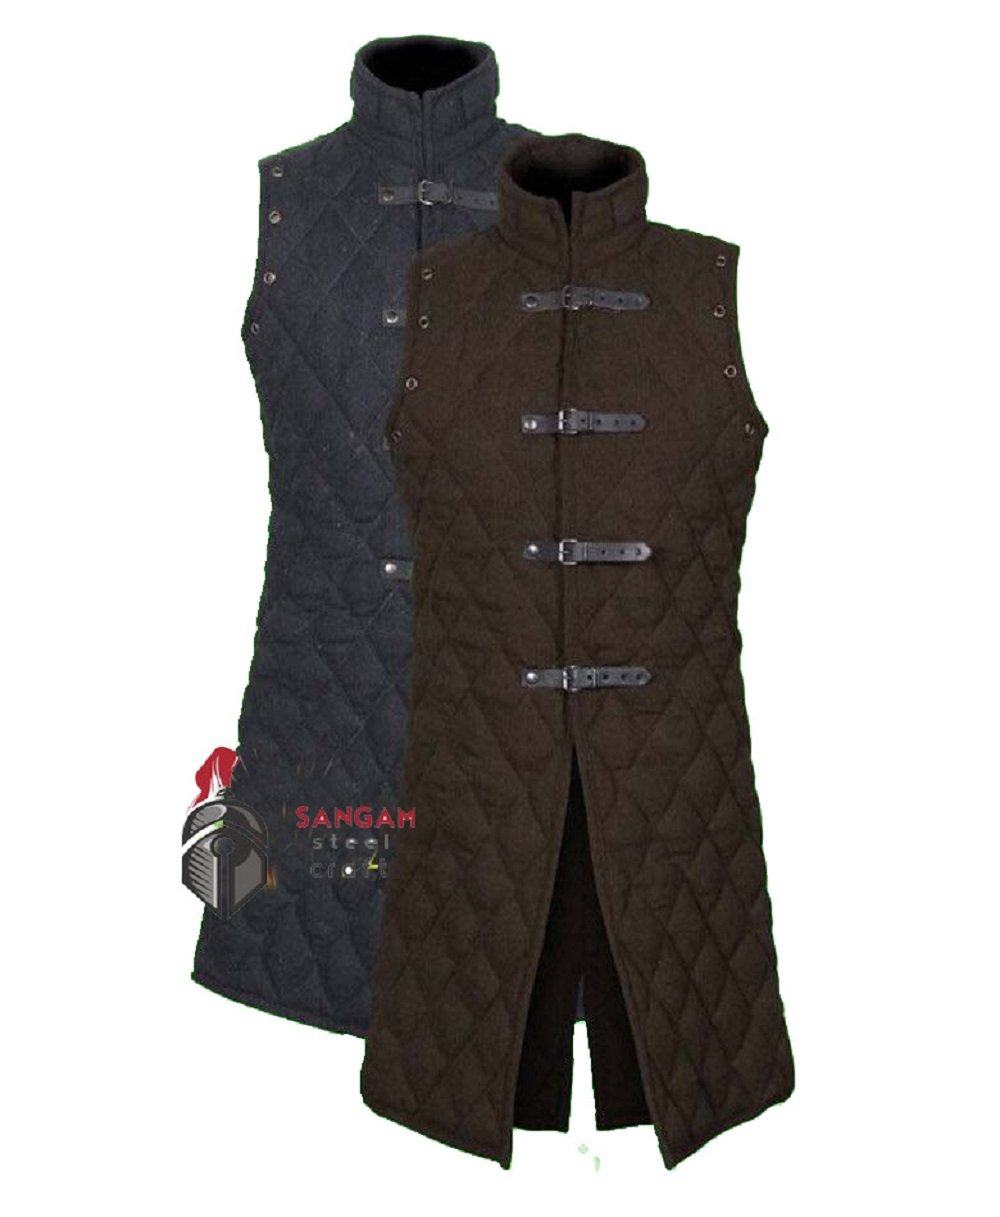 SANGAMSTEELCRAFT Medieval Thick Padded Sleeve-Less Full Length Gambeson Coat Aketon Jacket Armor, Costumes Dress SCA (Large)